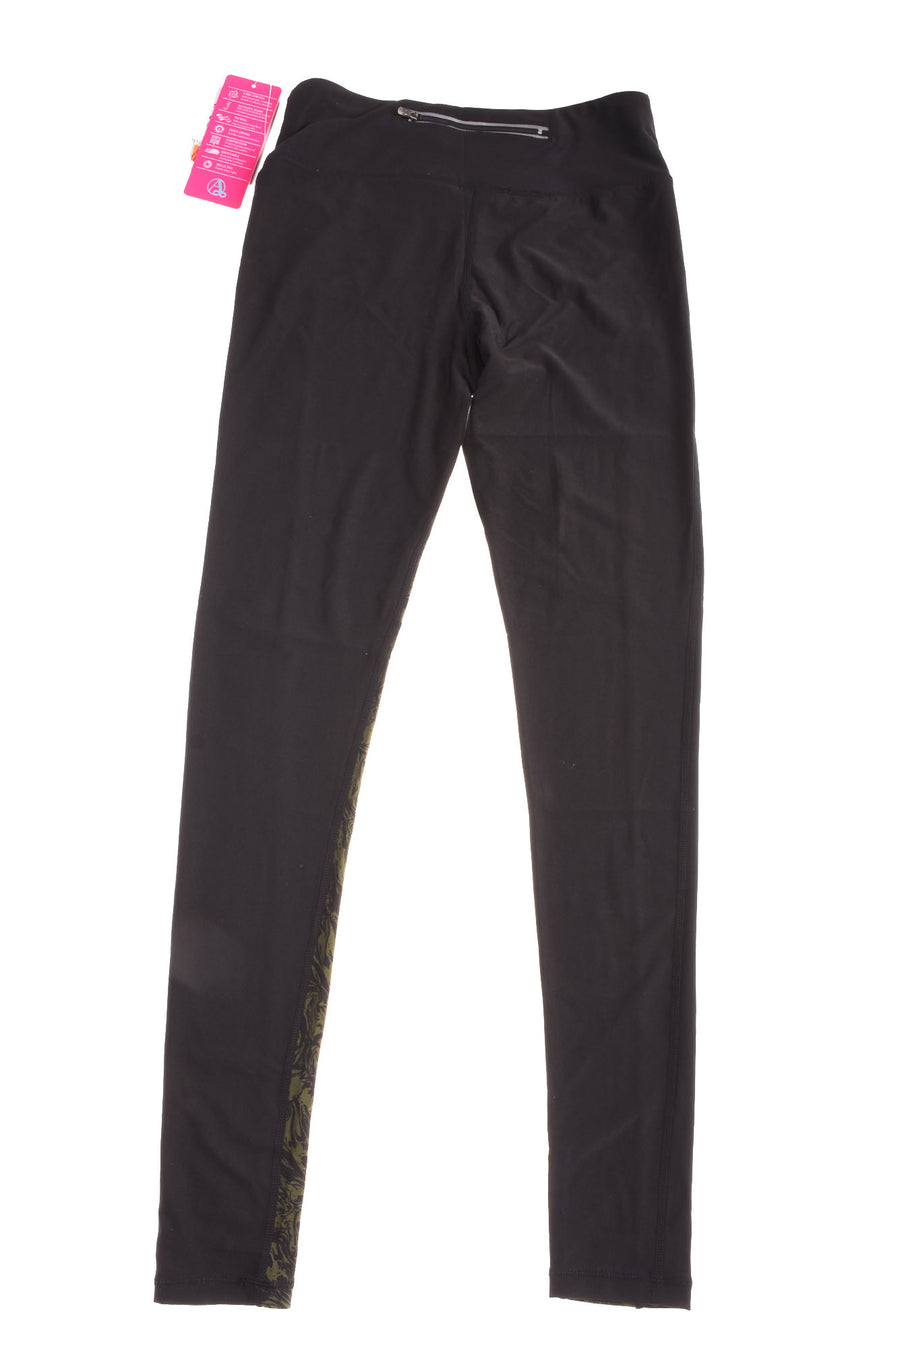 Women's Active Pants By Reactivate